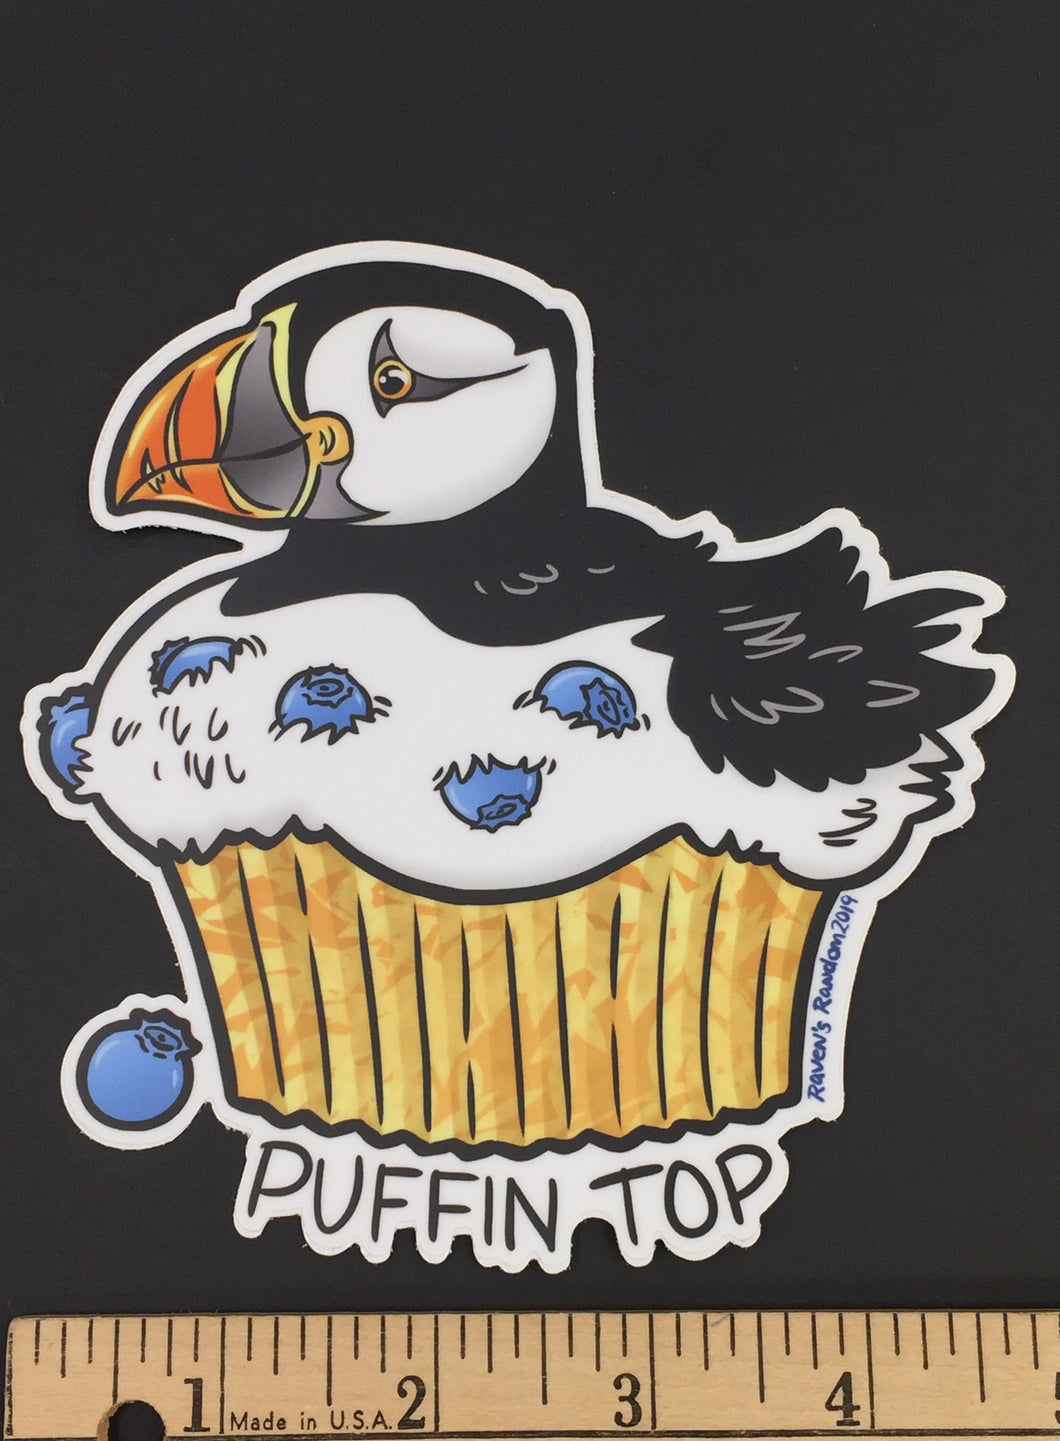 Puffin Top